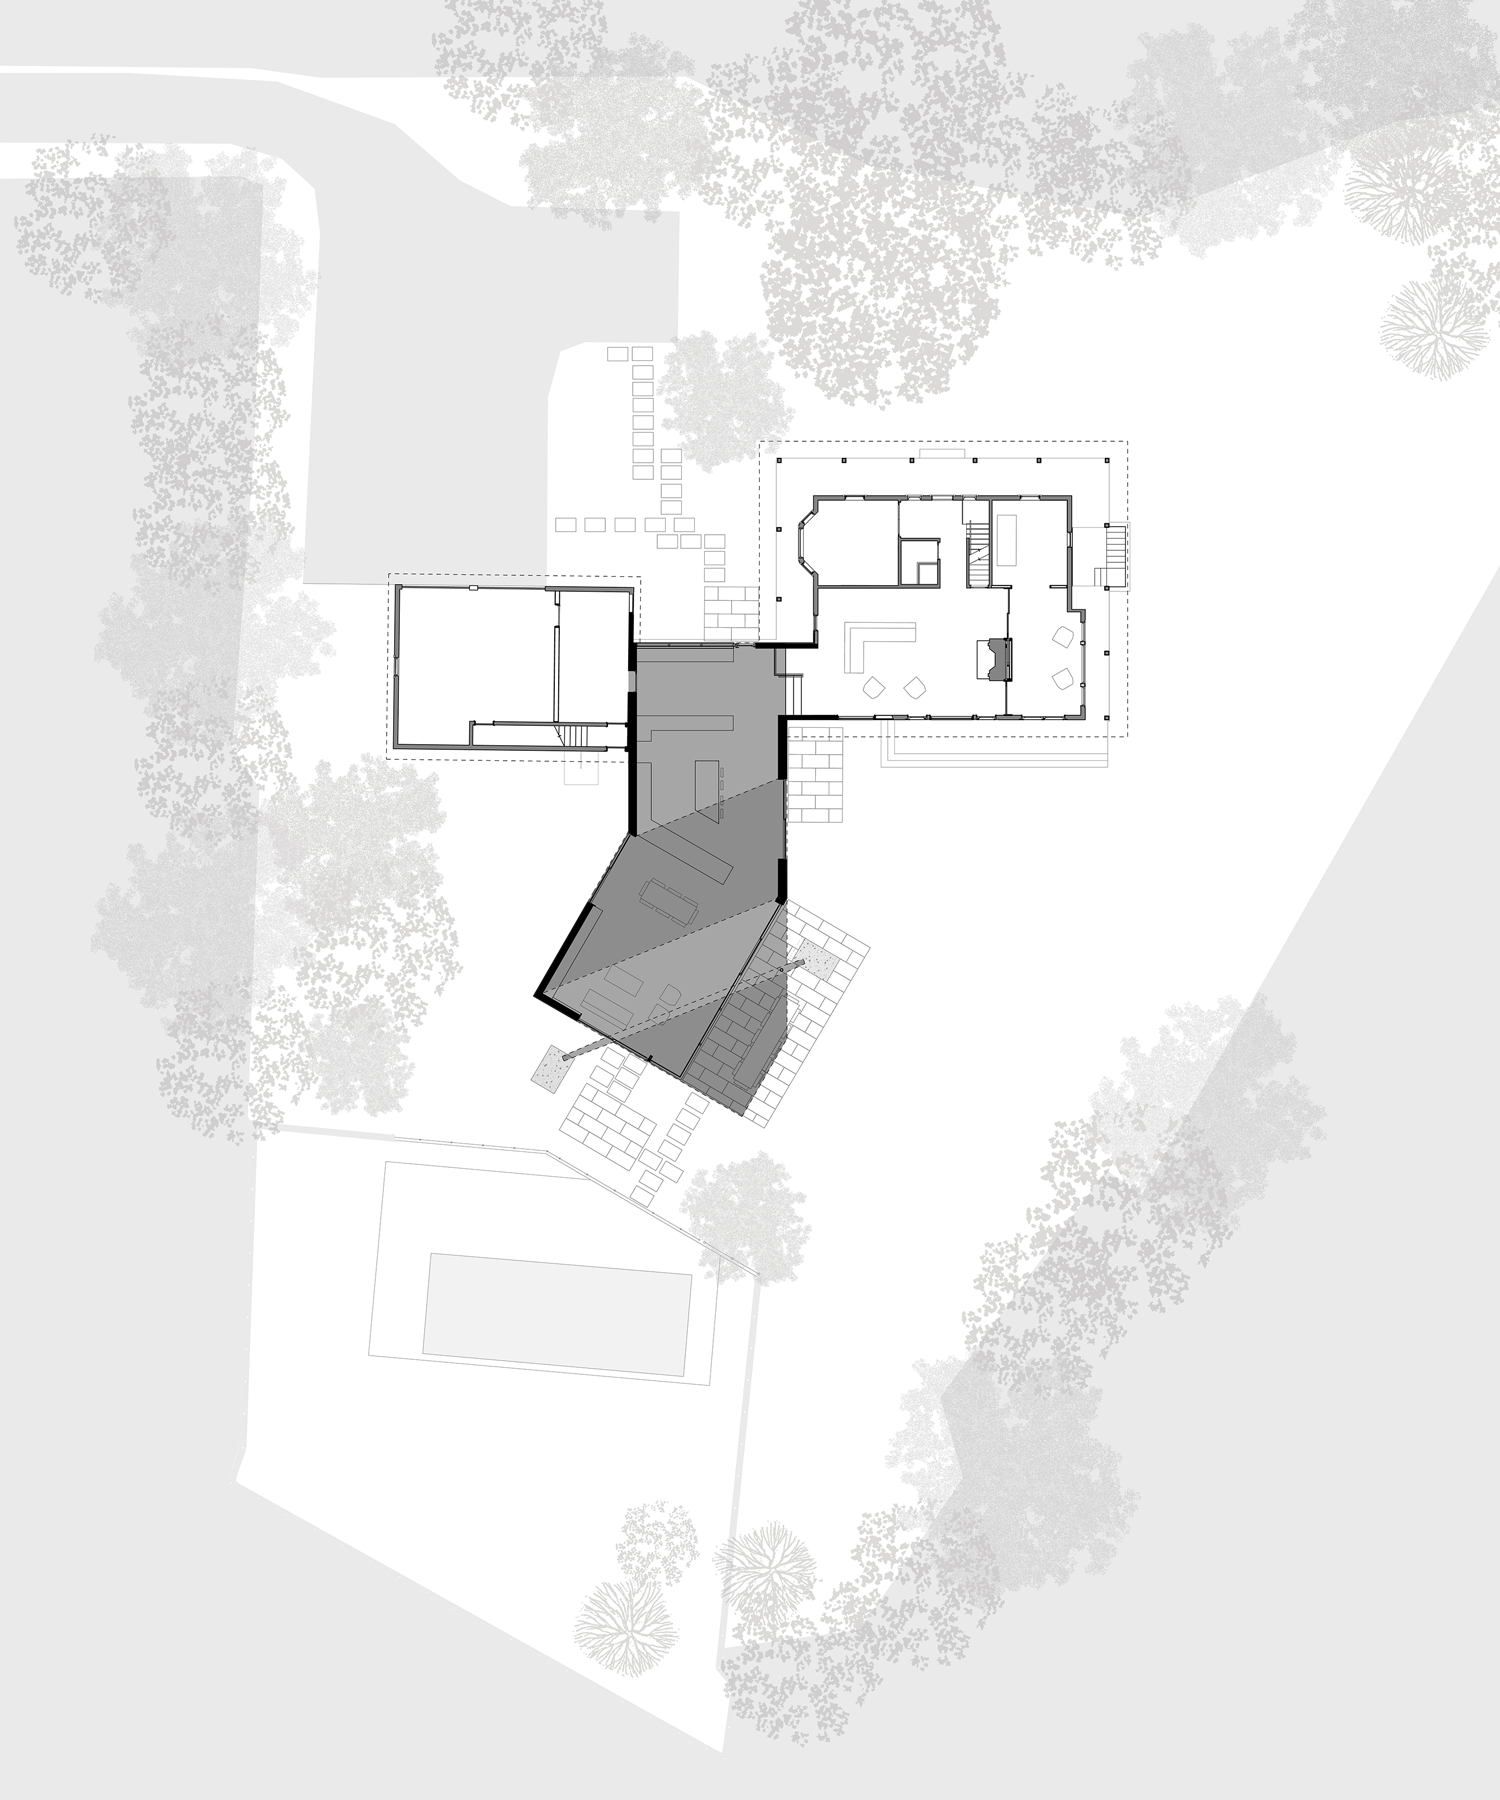 rWH13---SITE-PLAN.png